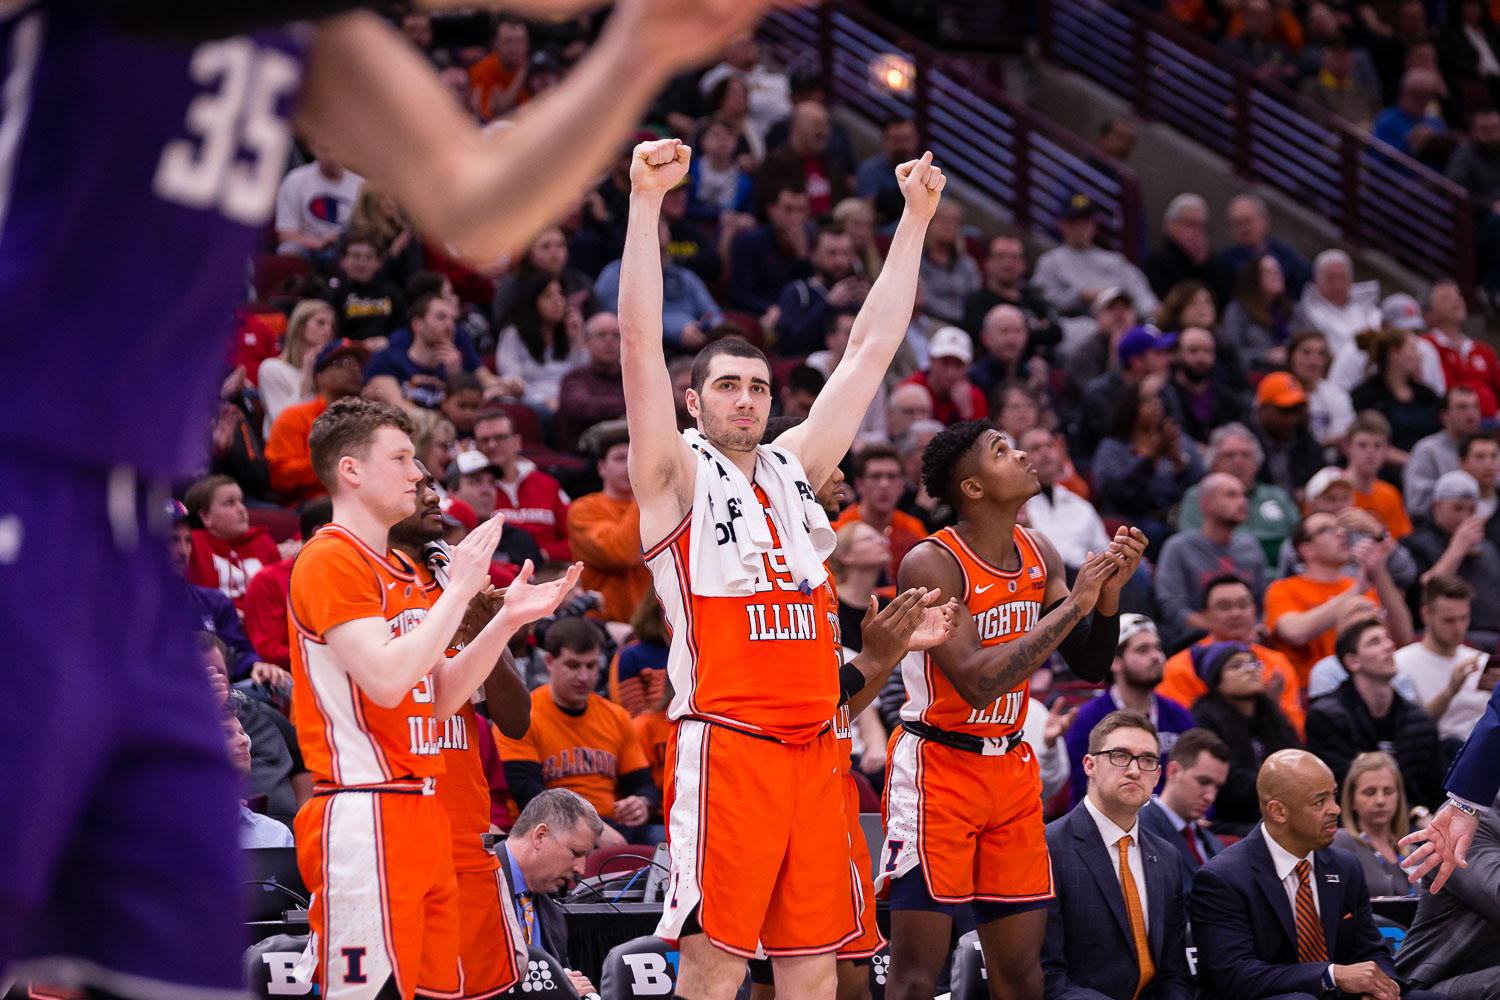 Illinois+forward+Giorgi+Bezhanishvili+%28center%29+celebrates+during+the+game+against+Northwestern+in+the+first+round+of+the+Big+Ten+Tournament+at+the+United+Center+on+Wednesday.